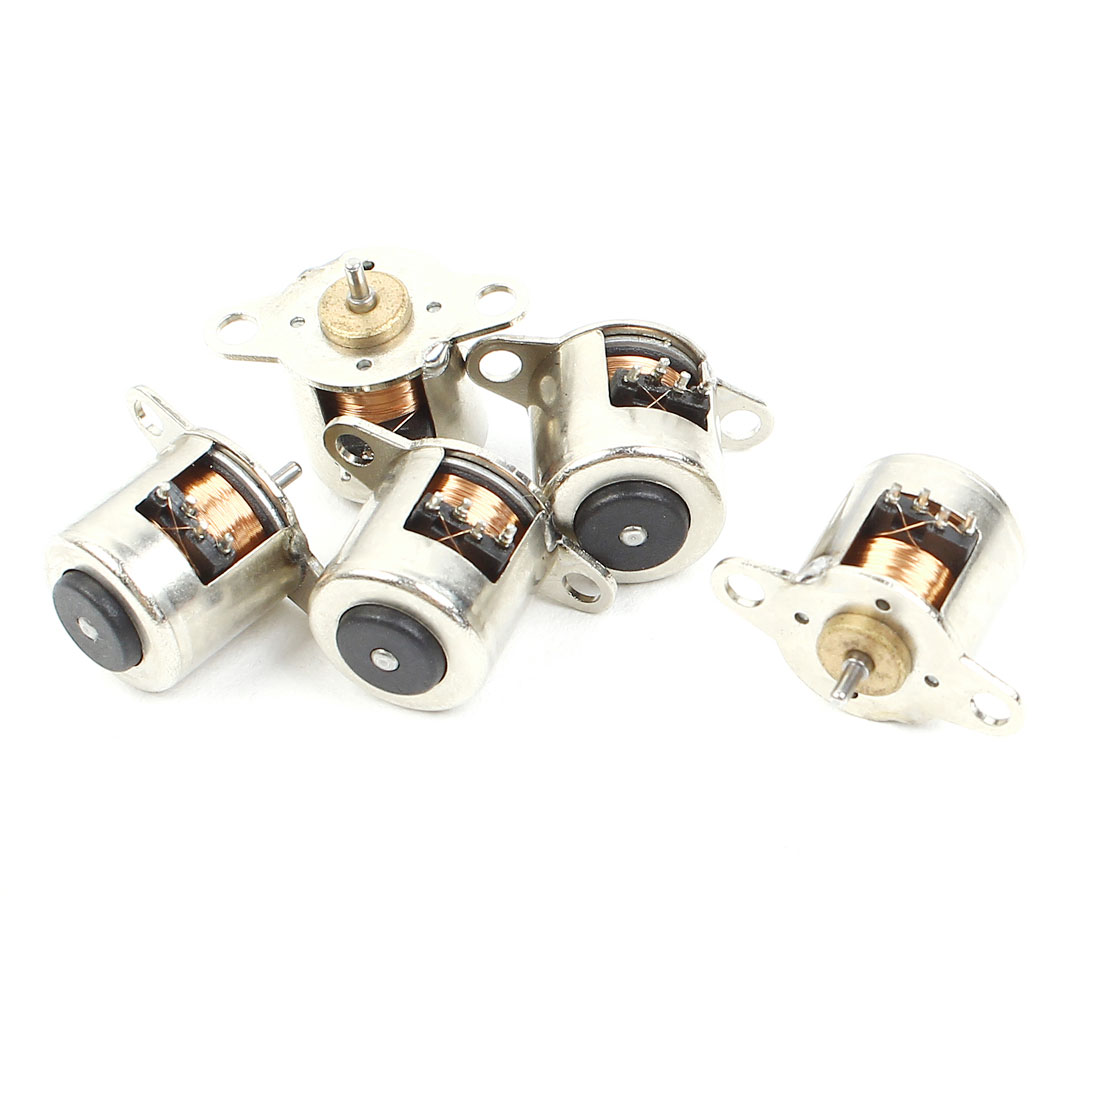 5pcs 3mm x 1mm Shaft Silver Tone Metal Stepper Motor 1000RPM